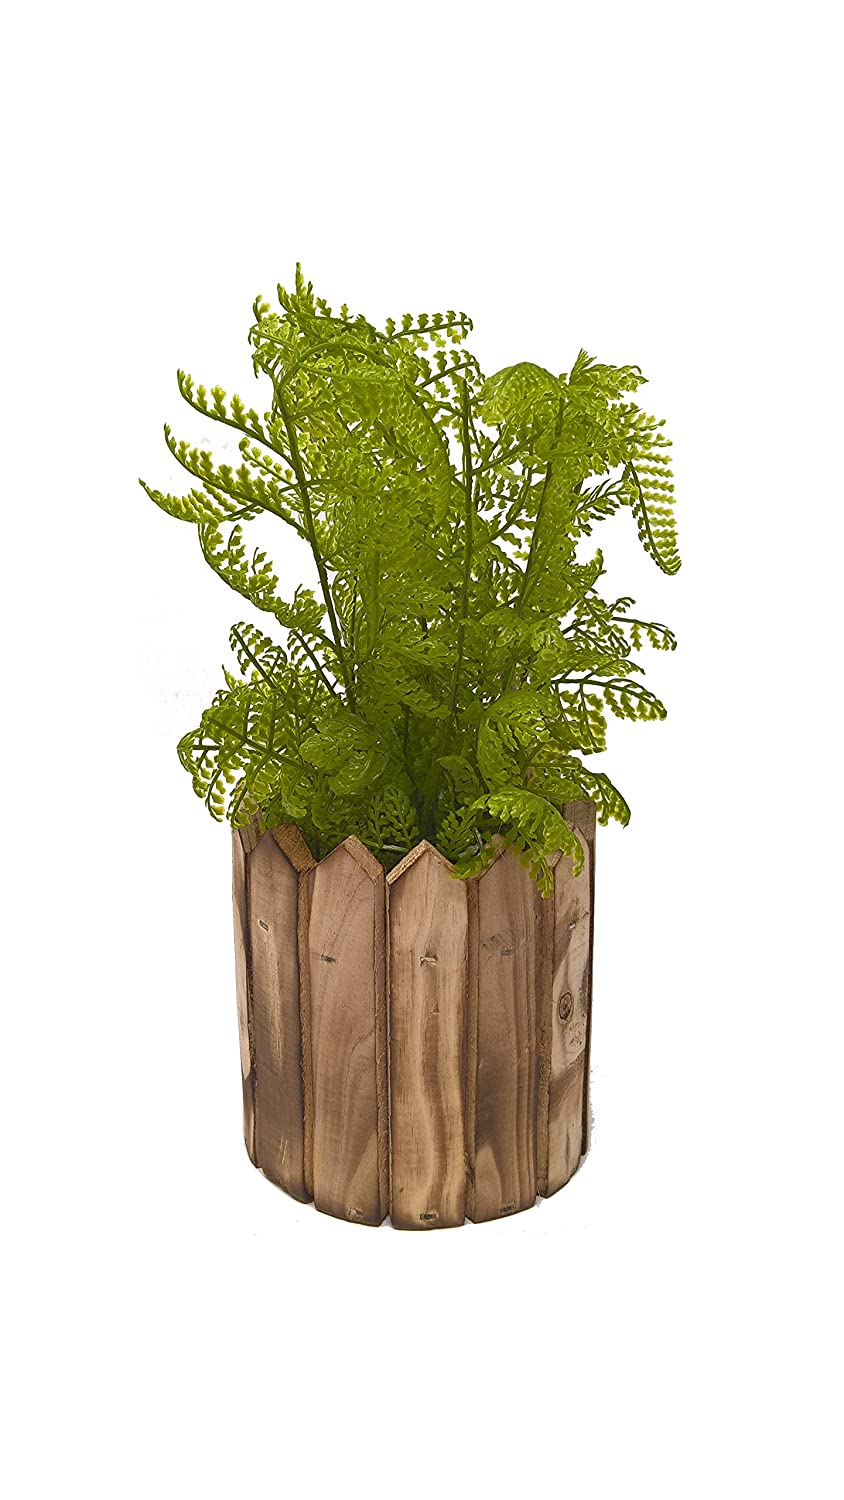 Rolmie Wooden Hanging Pot Wooden Planter with Artificial Fern